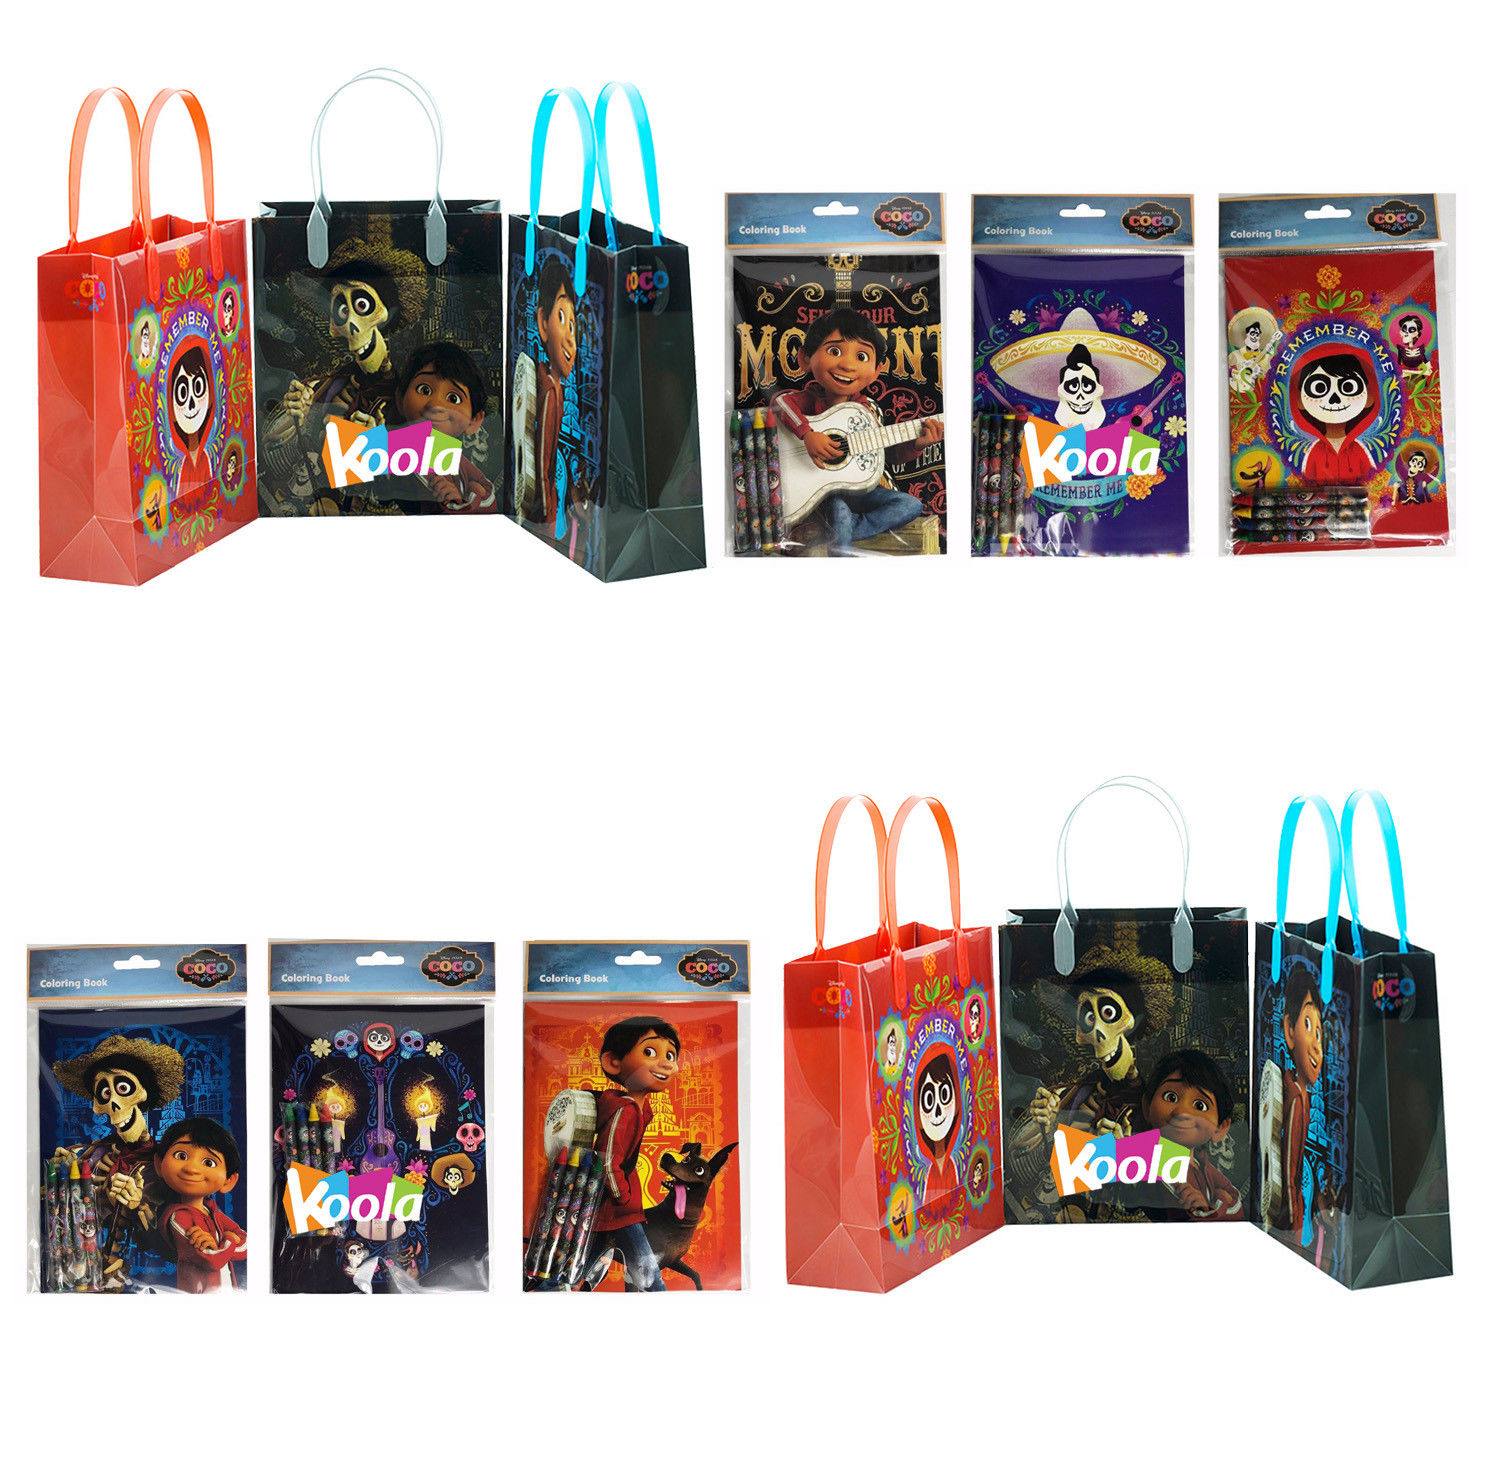 12pc coco Disney Pixar Birthday Party Supply Favor Gift Bags w/coloring book